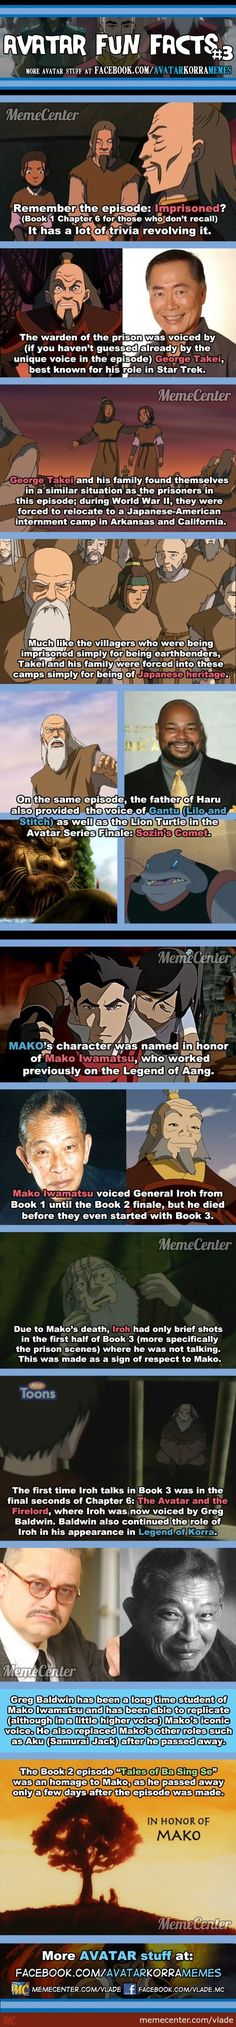 Avatar Fun Facts #3  That makes Tales of Ba Sing Se even sadder... and I cry every time I see it.